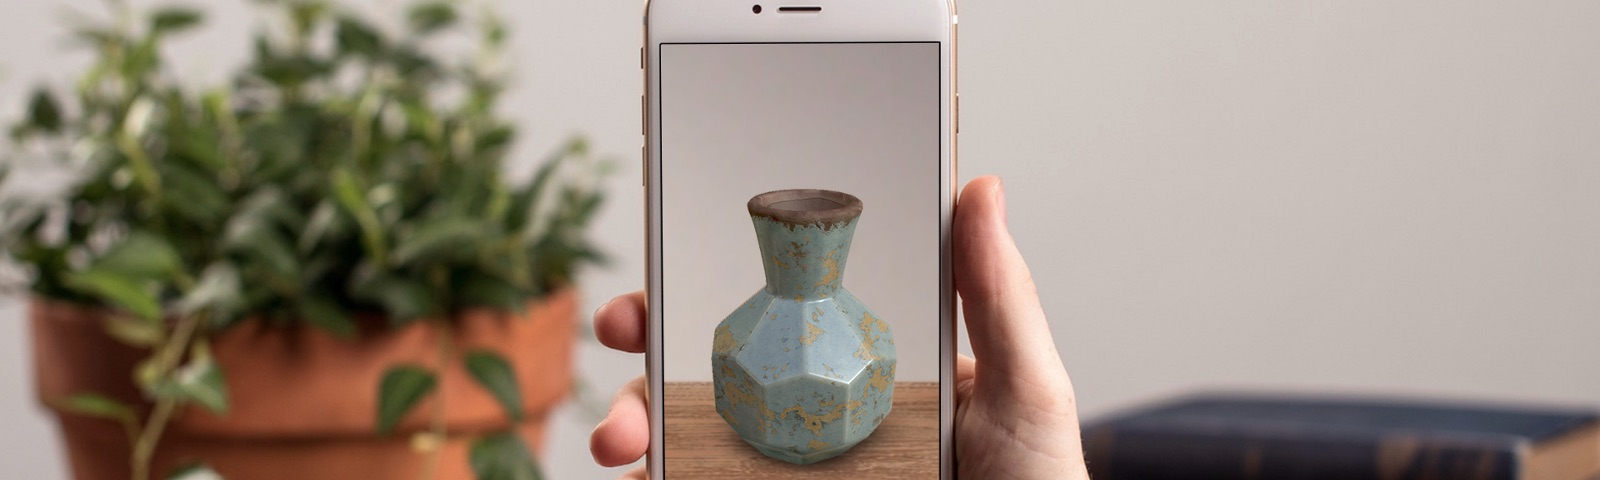 Viewing an AR vase on a shelf